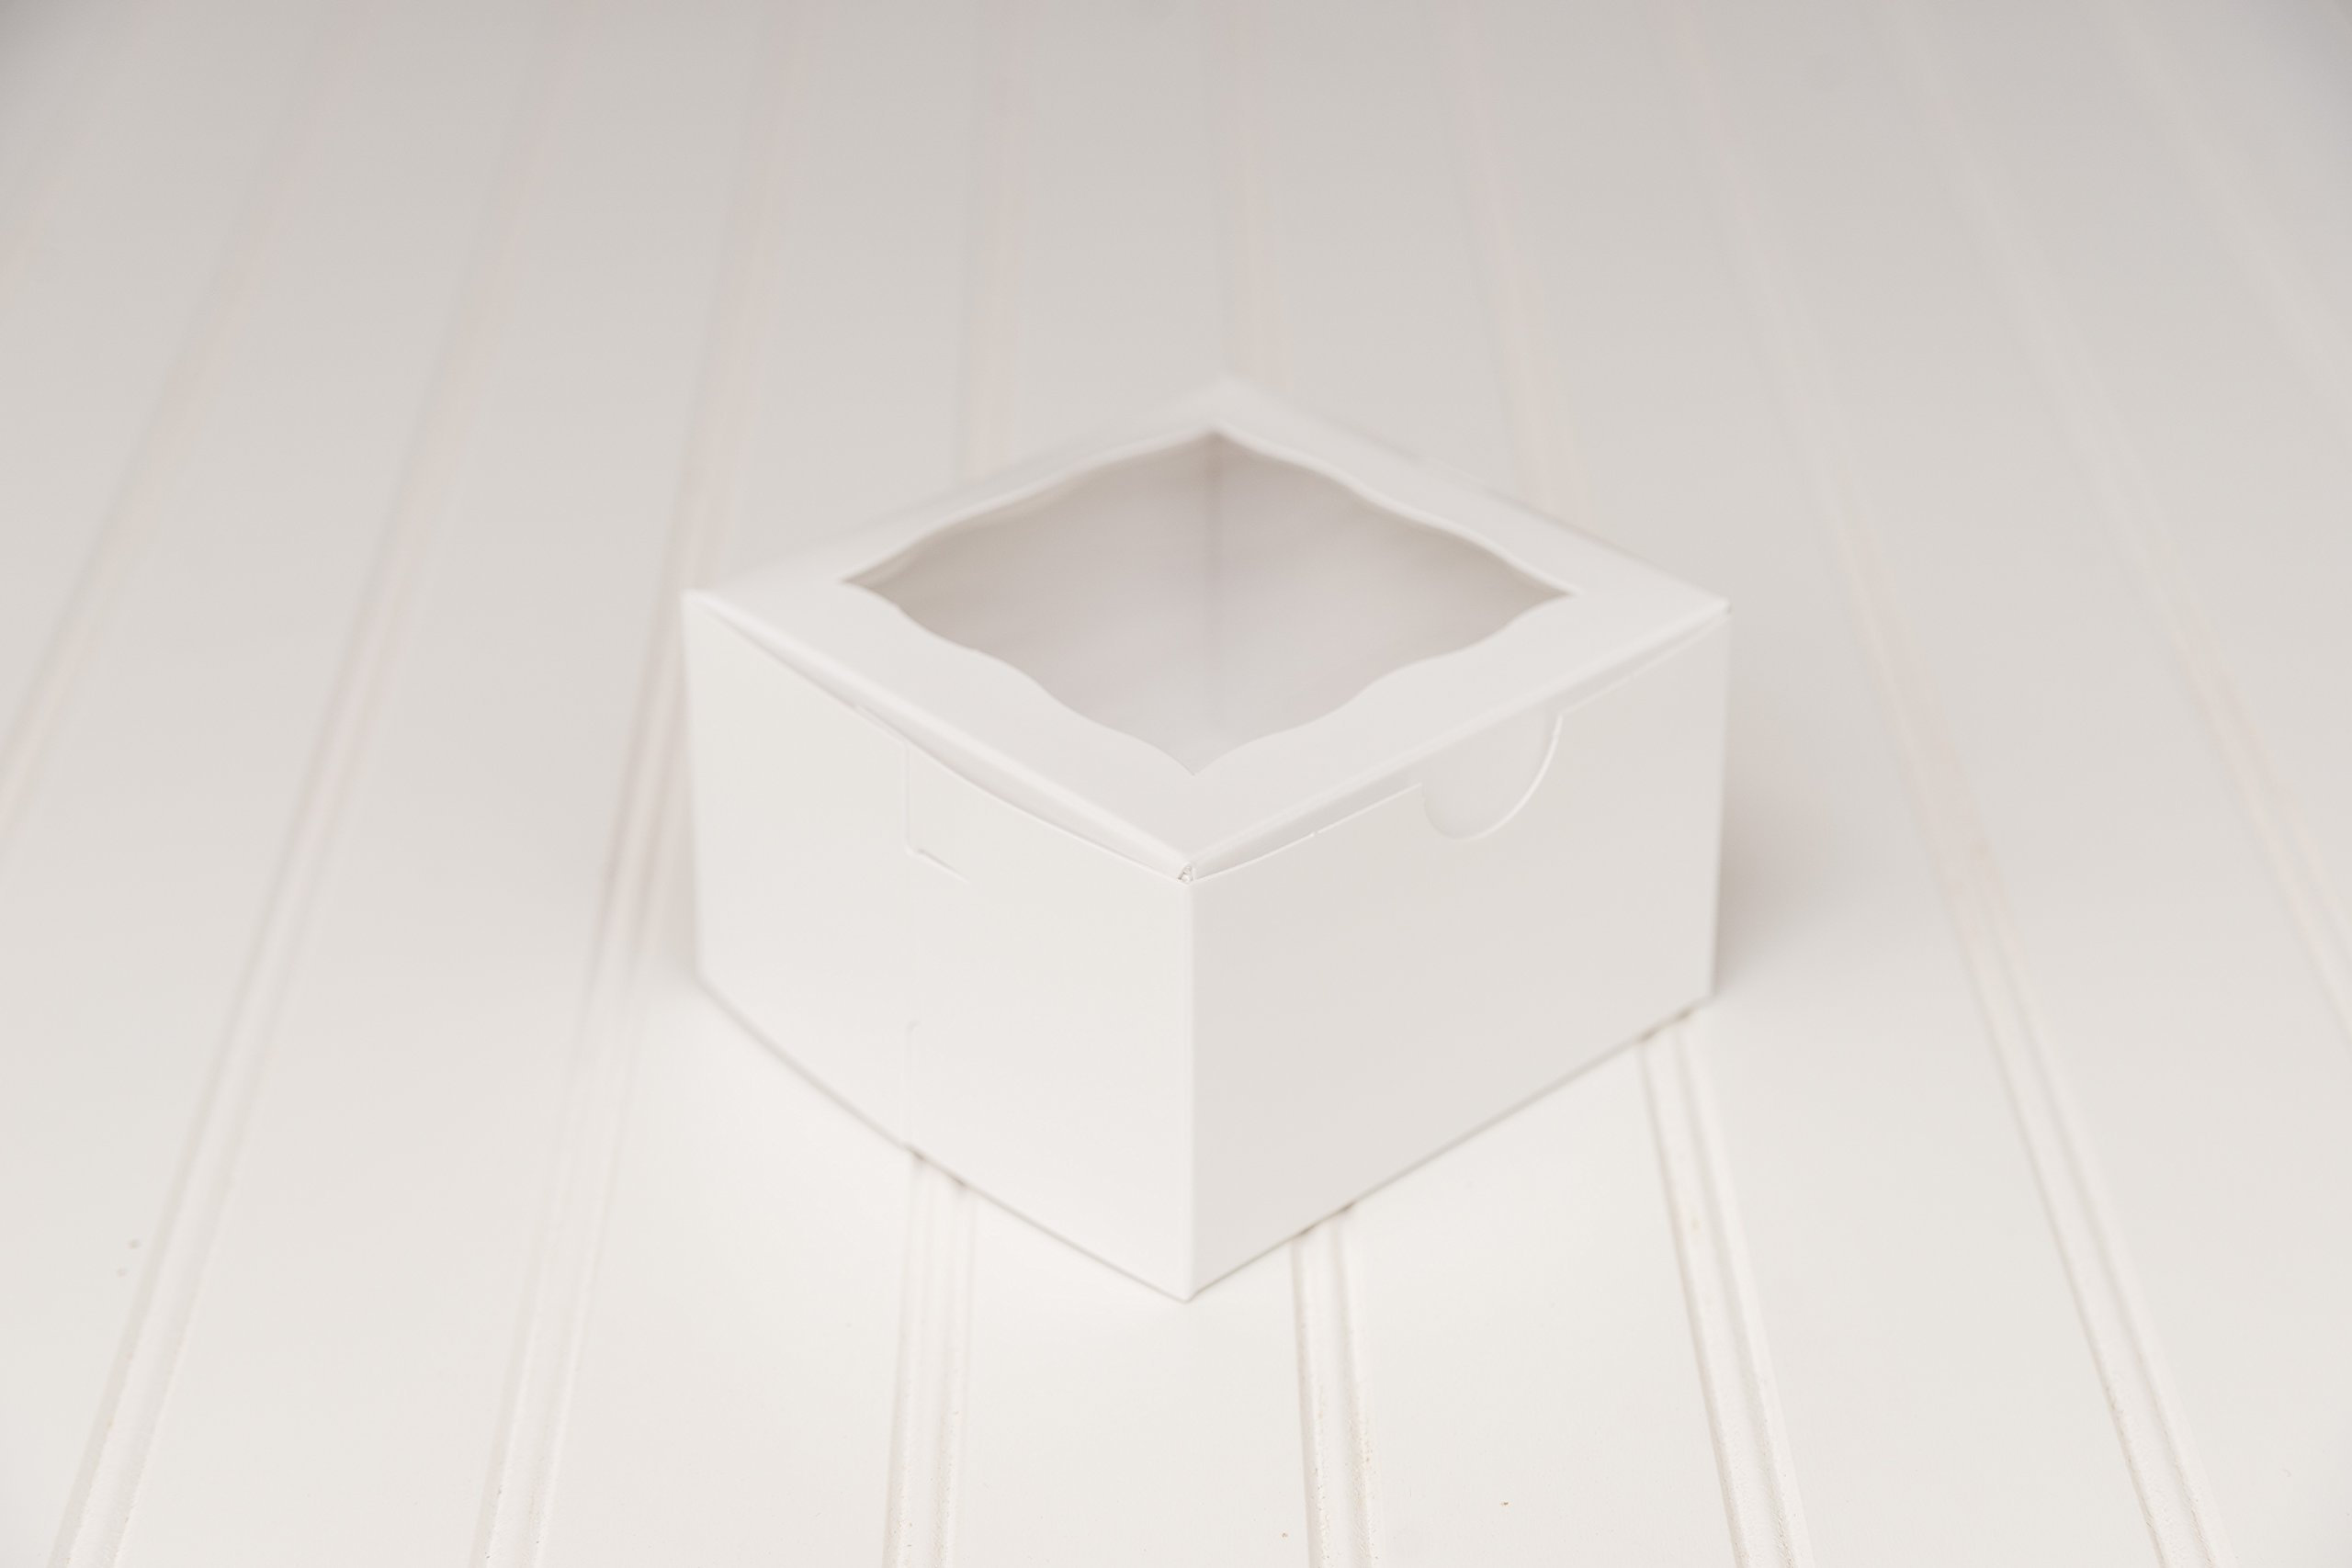 The Buttercup House 12 White Single Donut Box 4 x 4 x 2 1/2